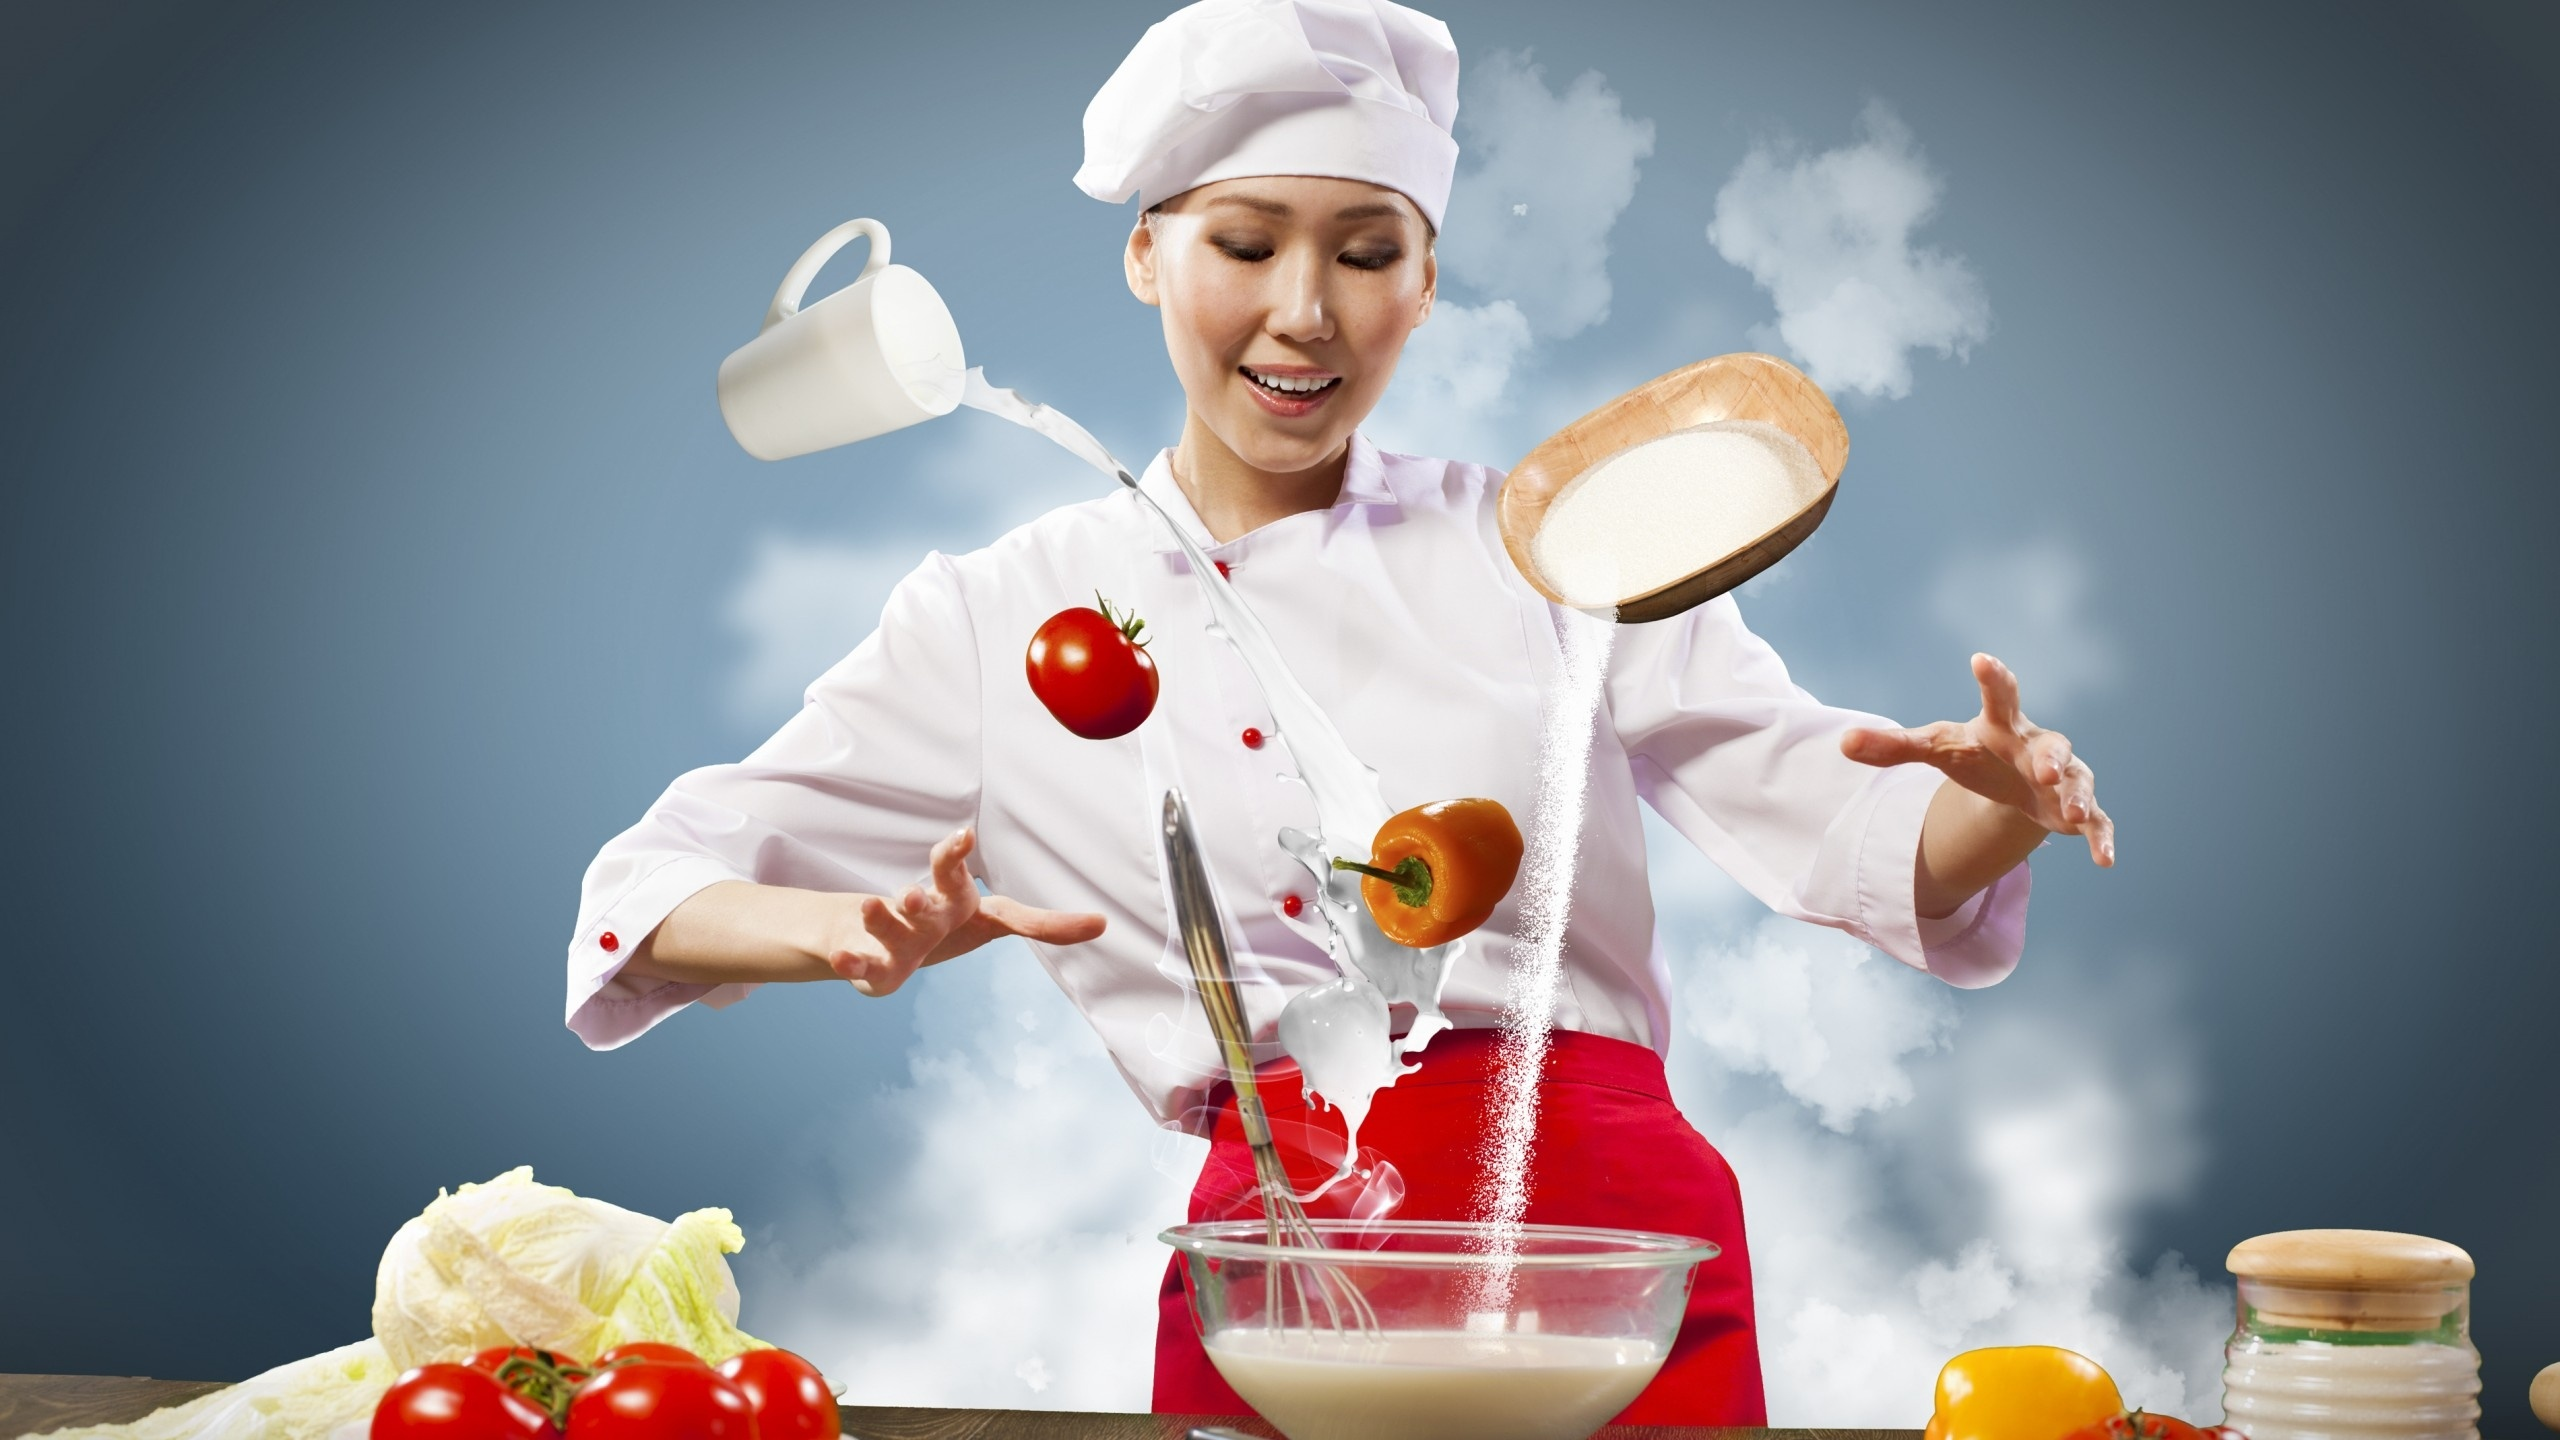 39706975-chef-wallpapers.jpg